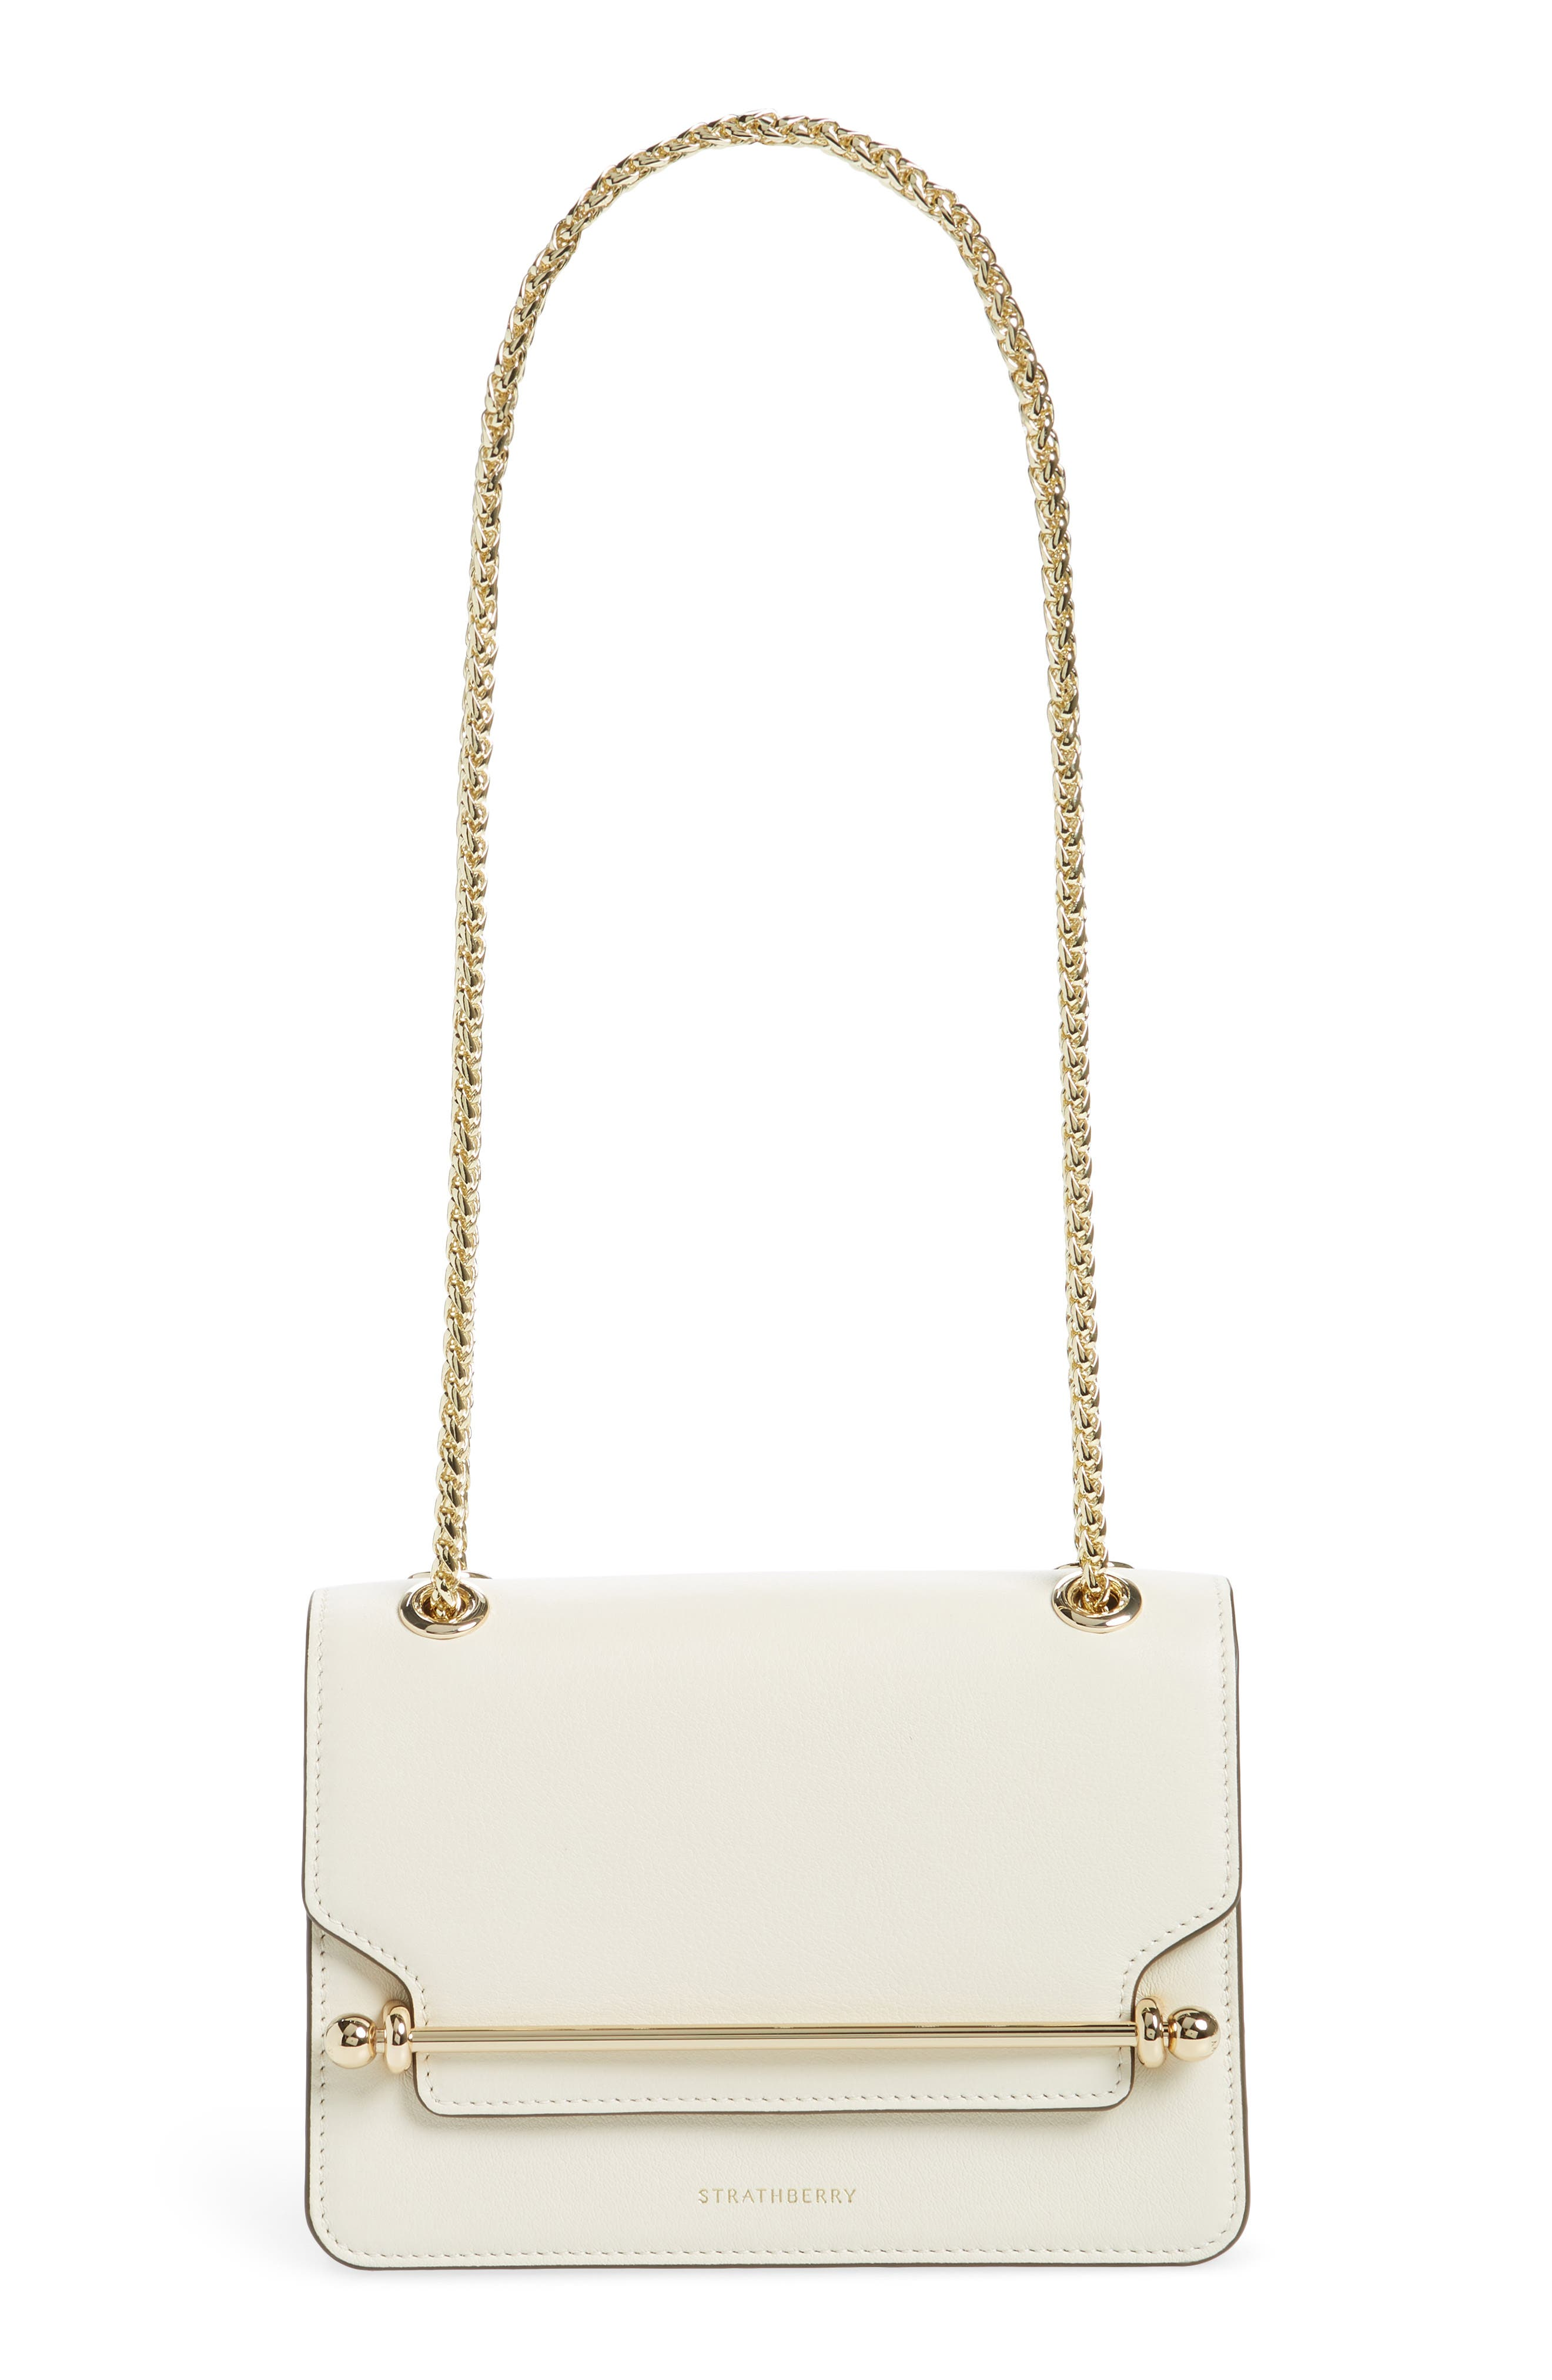 STRATHBERRY Mini East/West Leather Crossbody Bag - Ivory in Vanilla